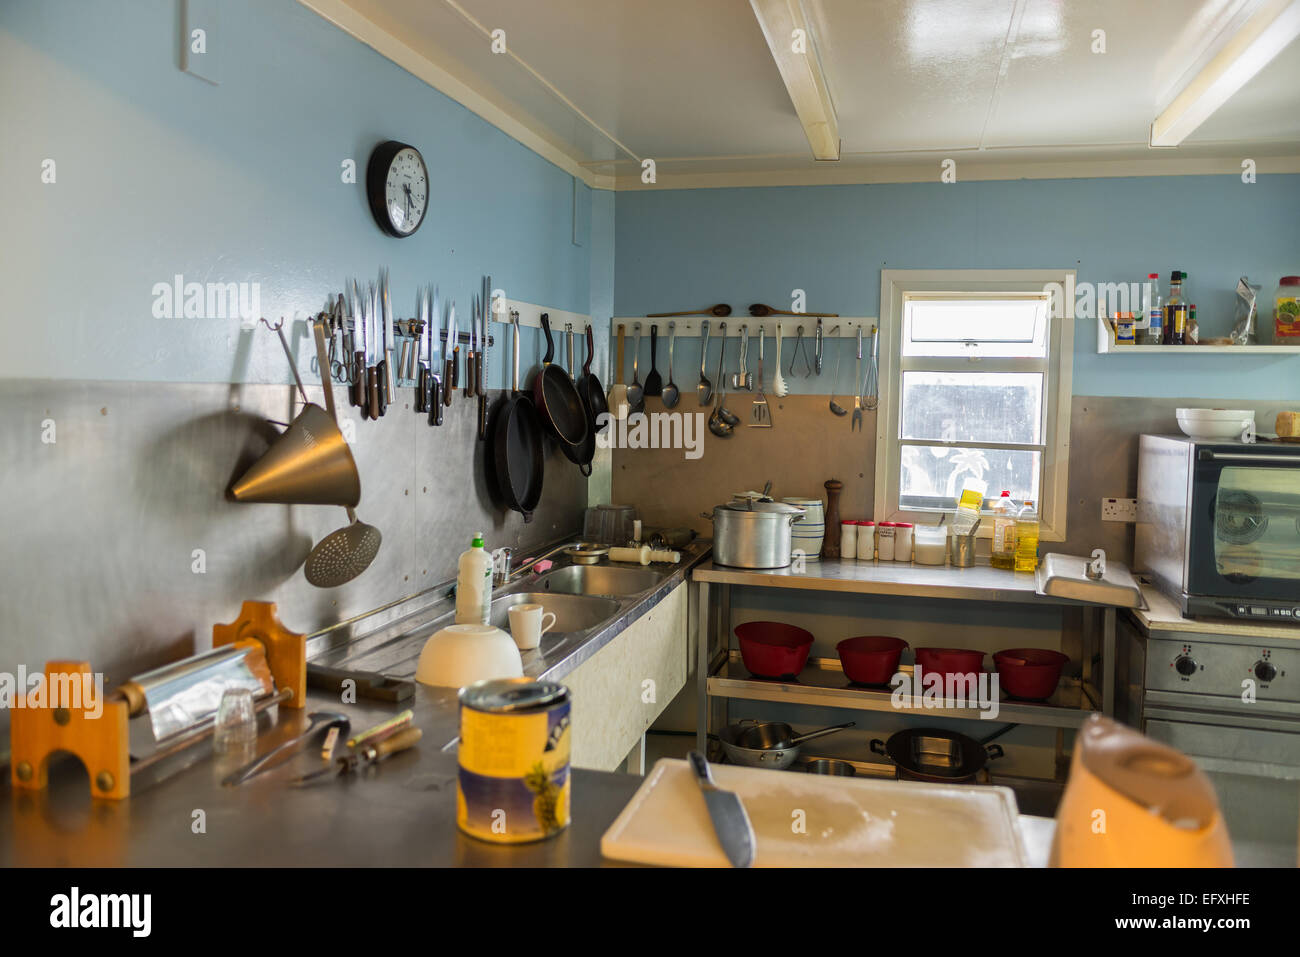 Kitchen at Vernadsky Ukranian Antarctic Research base, Galindez Island - Stock Image